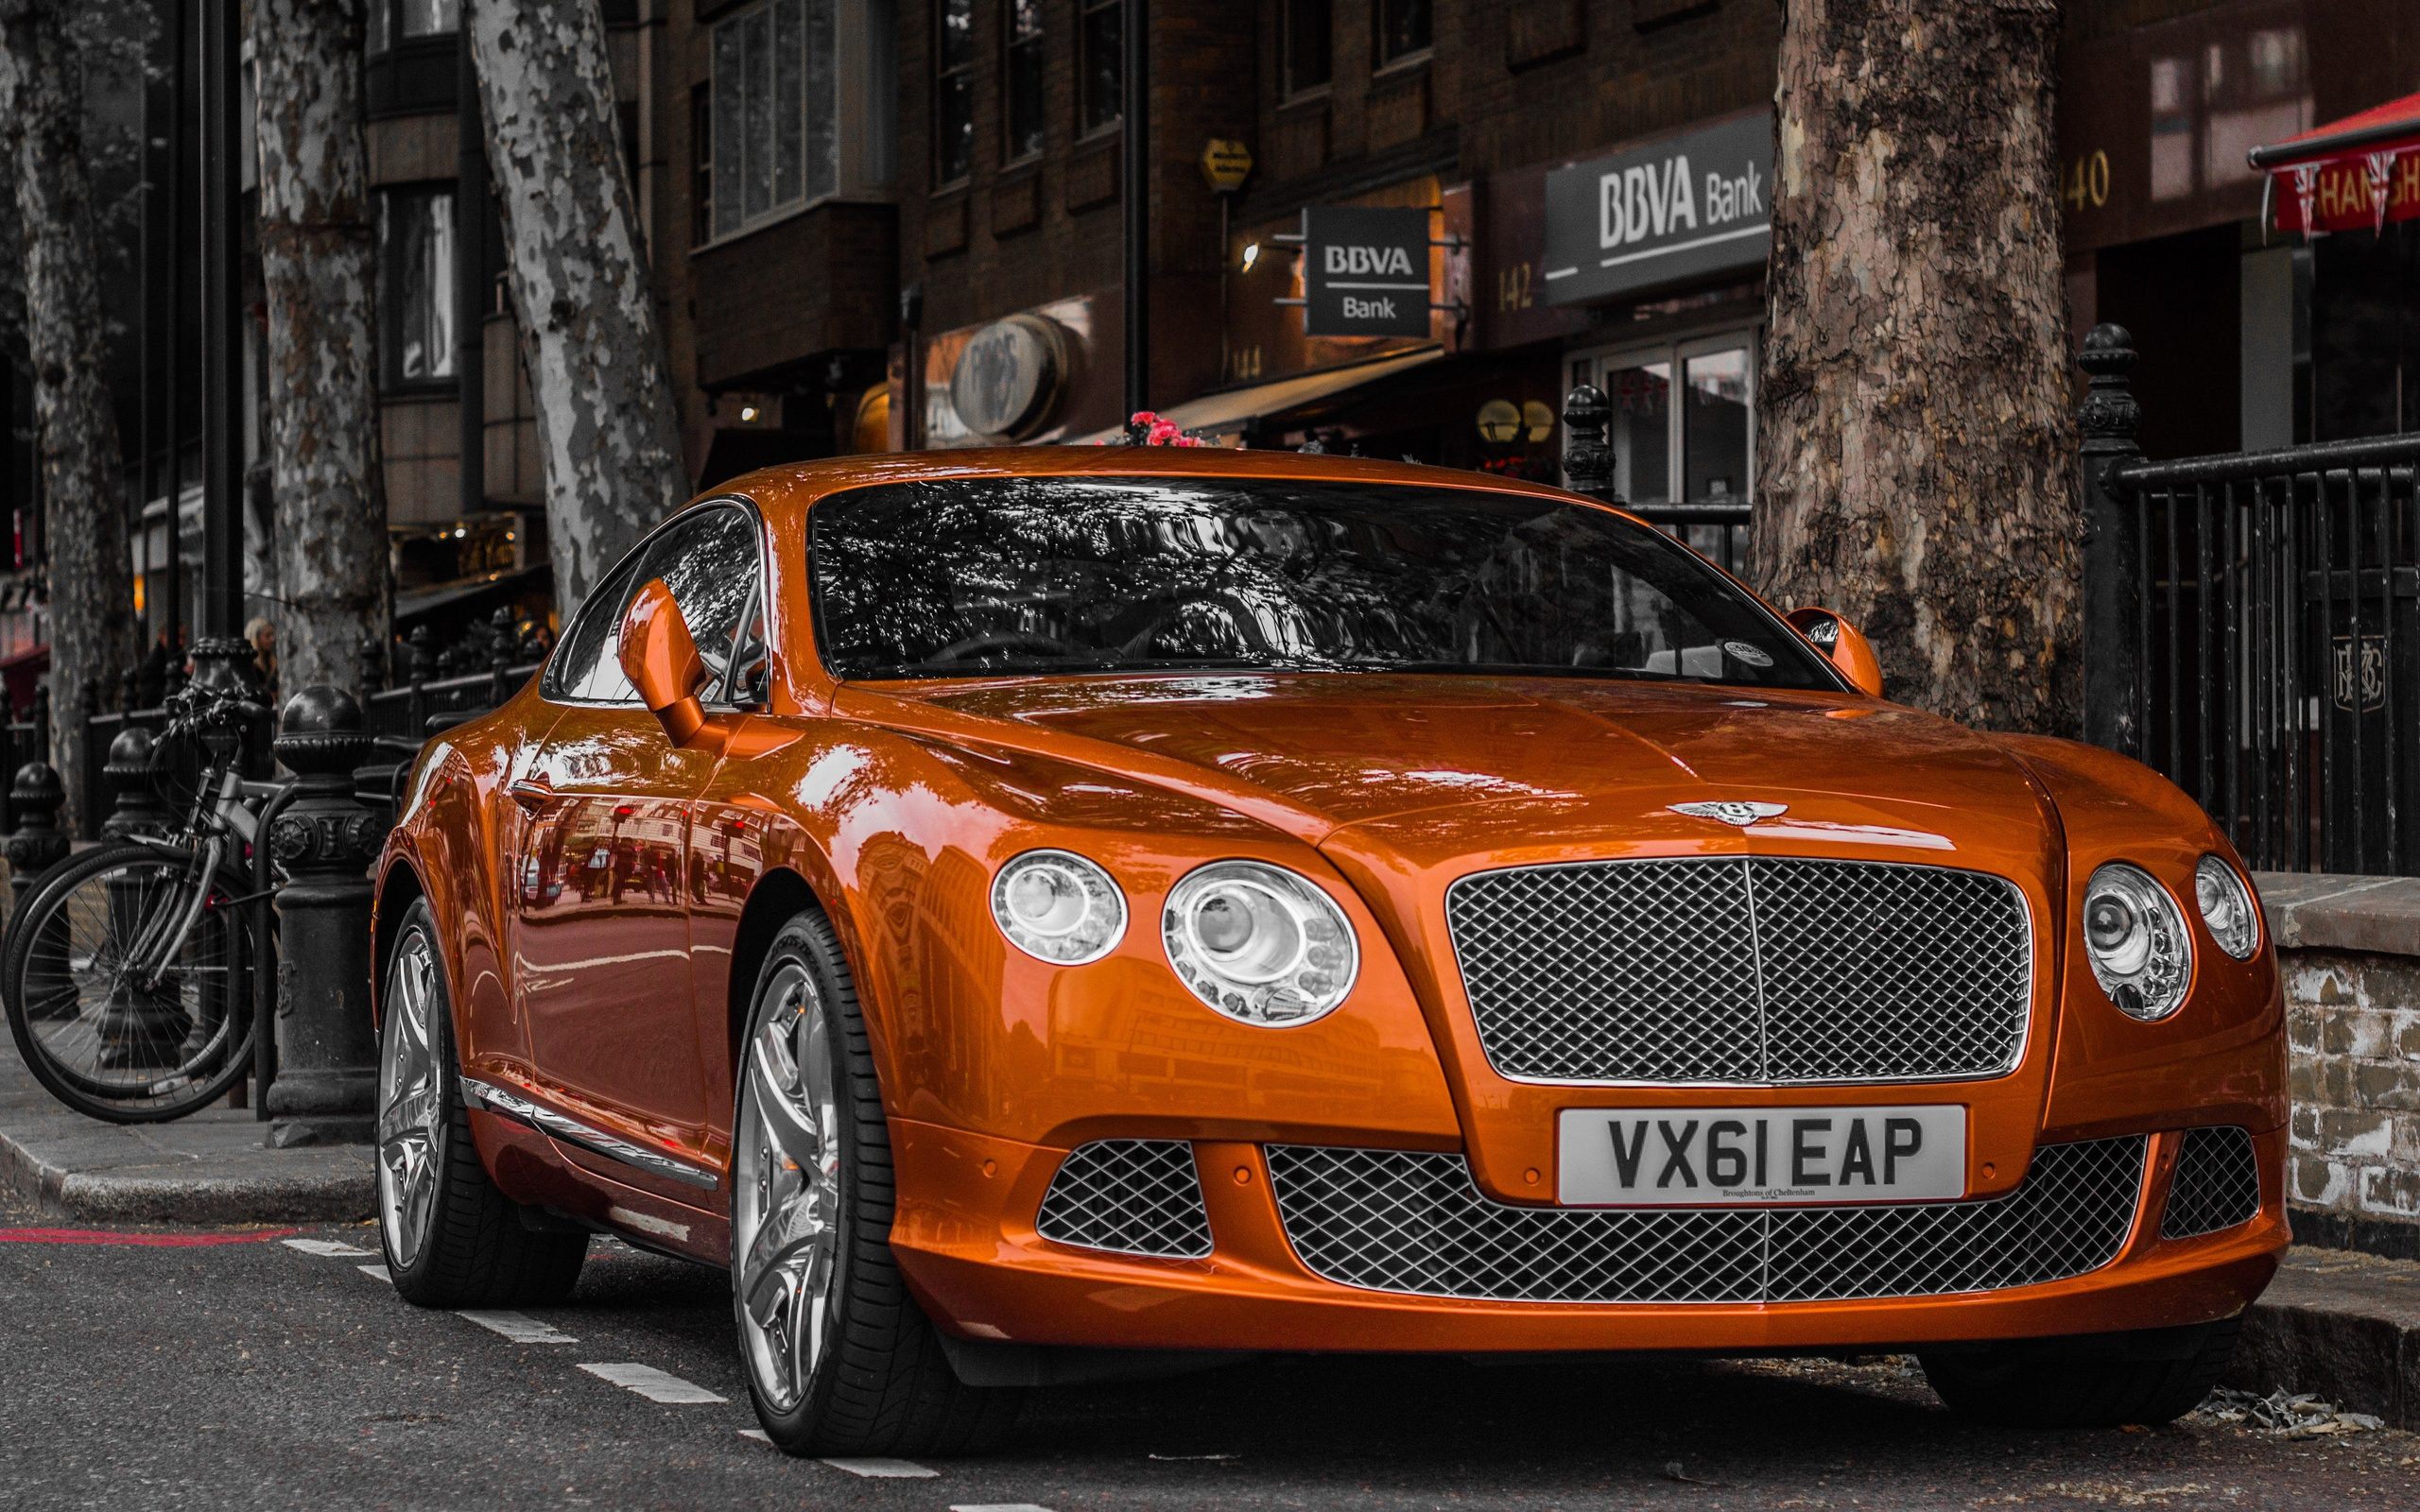 Bentley Car In City Street | 2560 x 1600 ...